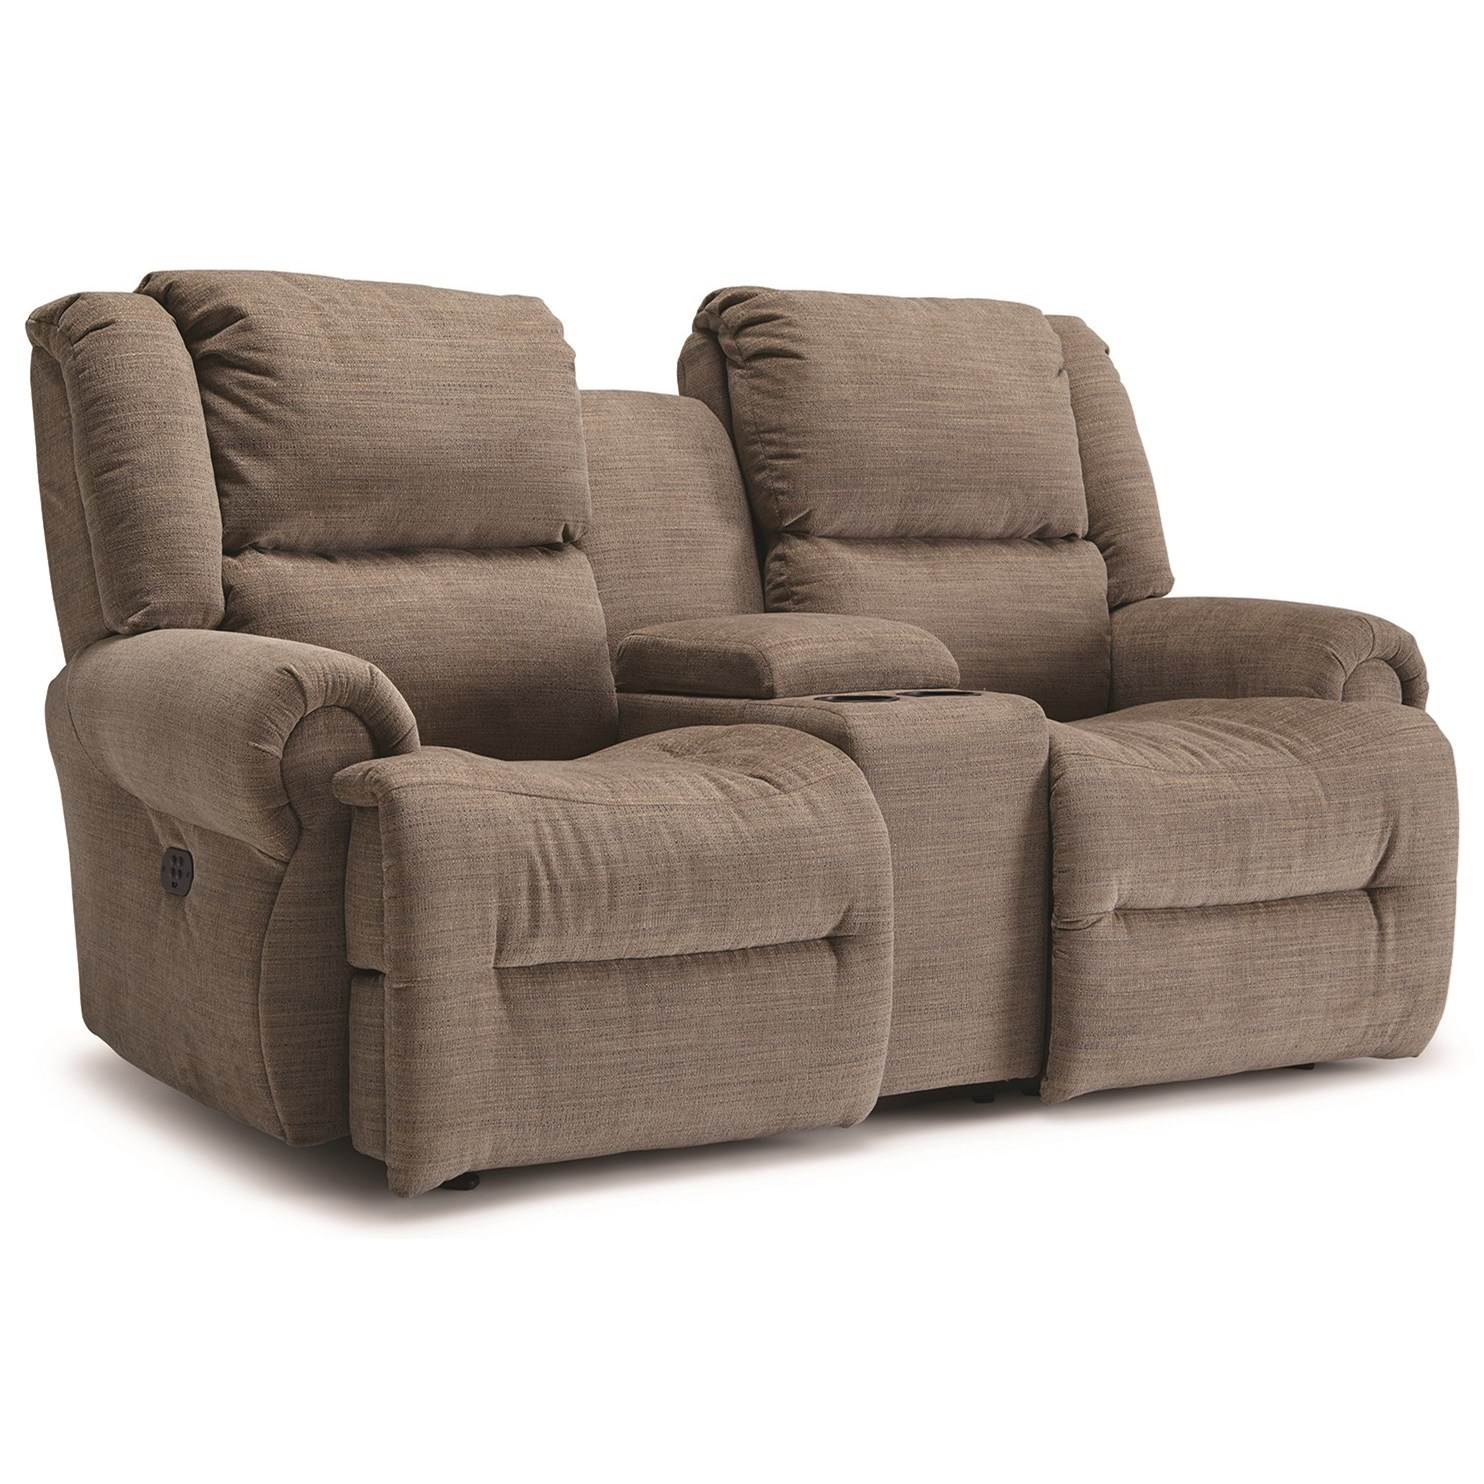 Genet Reclining Space Saver Console Loveseat by Best Home Furnishings at Wilcox Furniture